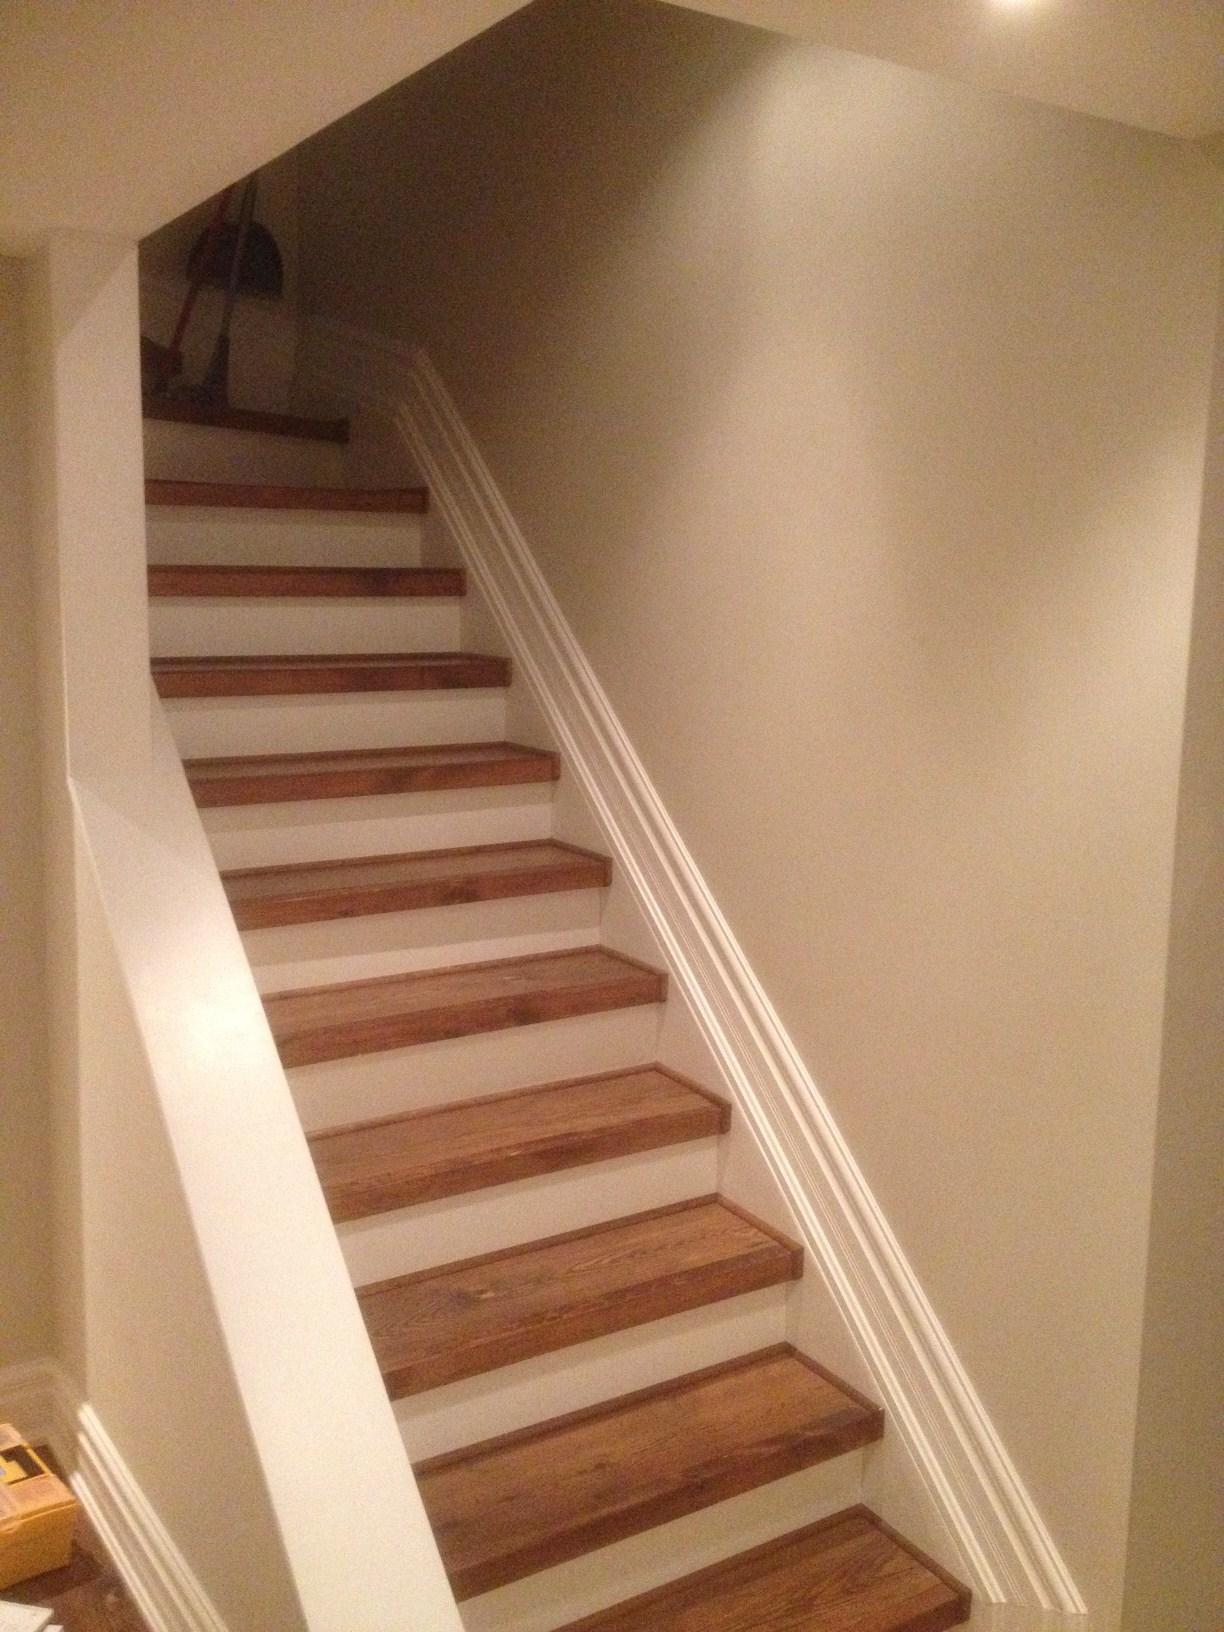 Missing Railing PRO SPECT Inspection Services